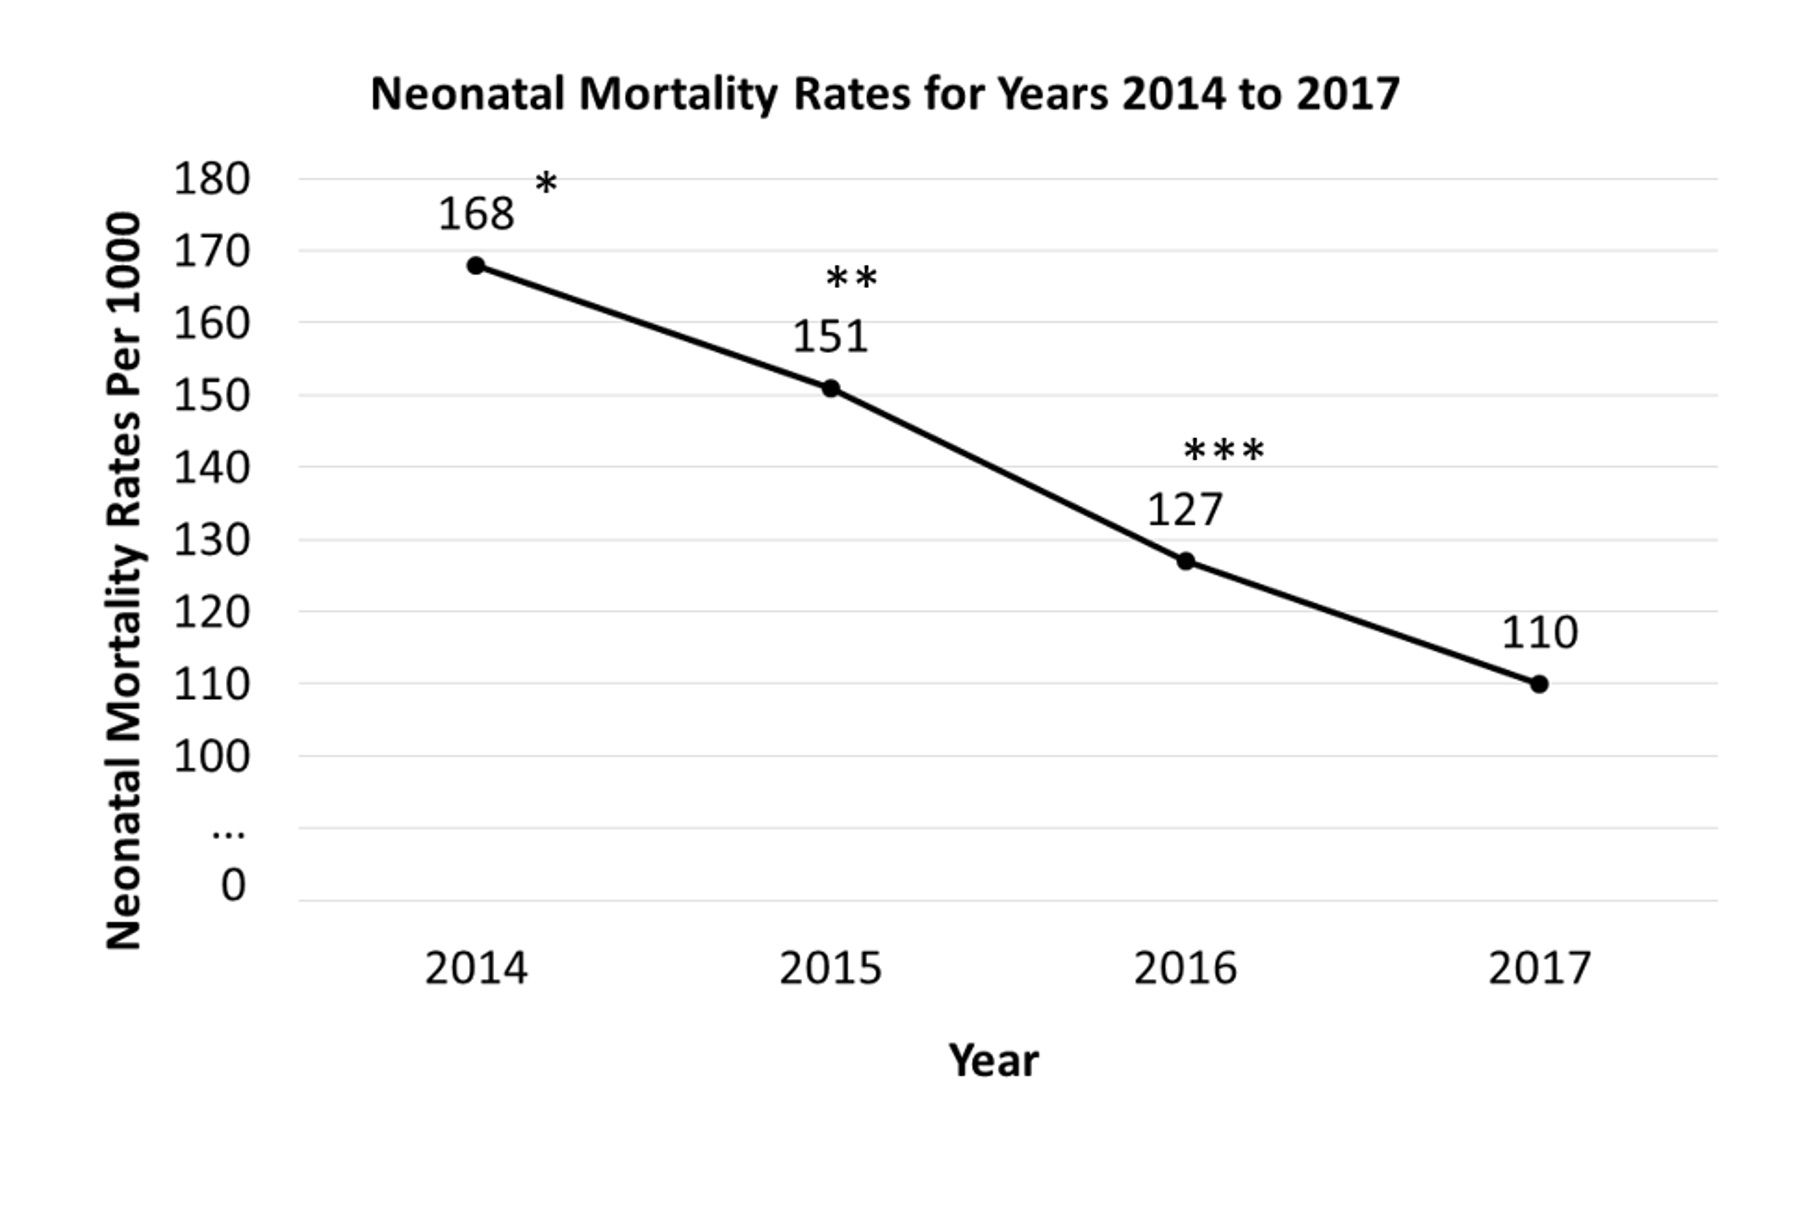 - Neonatal Mortality Rates for Years 2014 to 2017